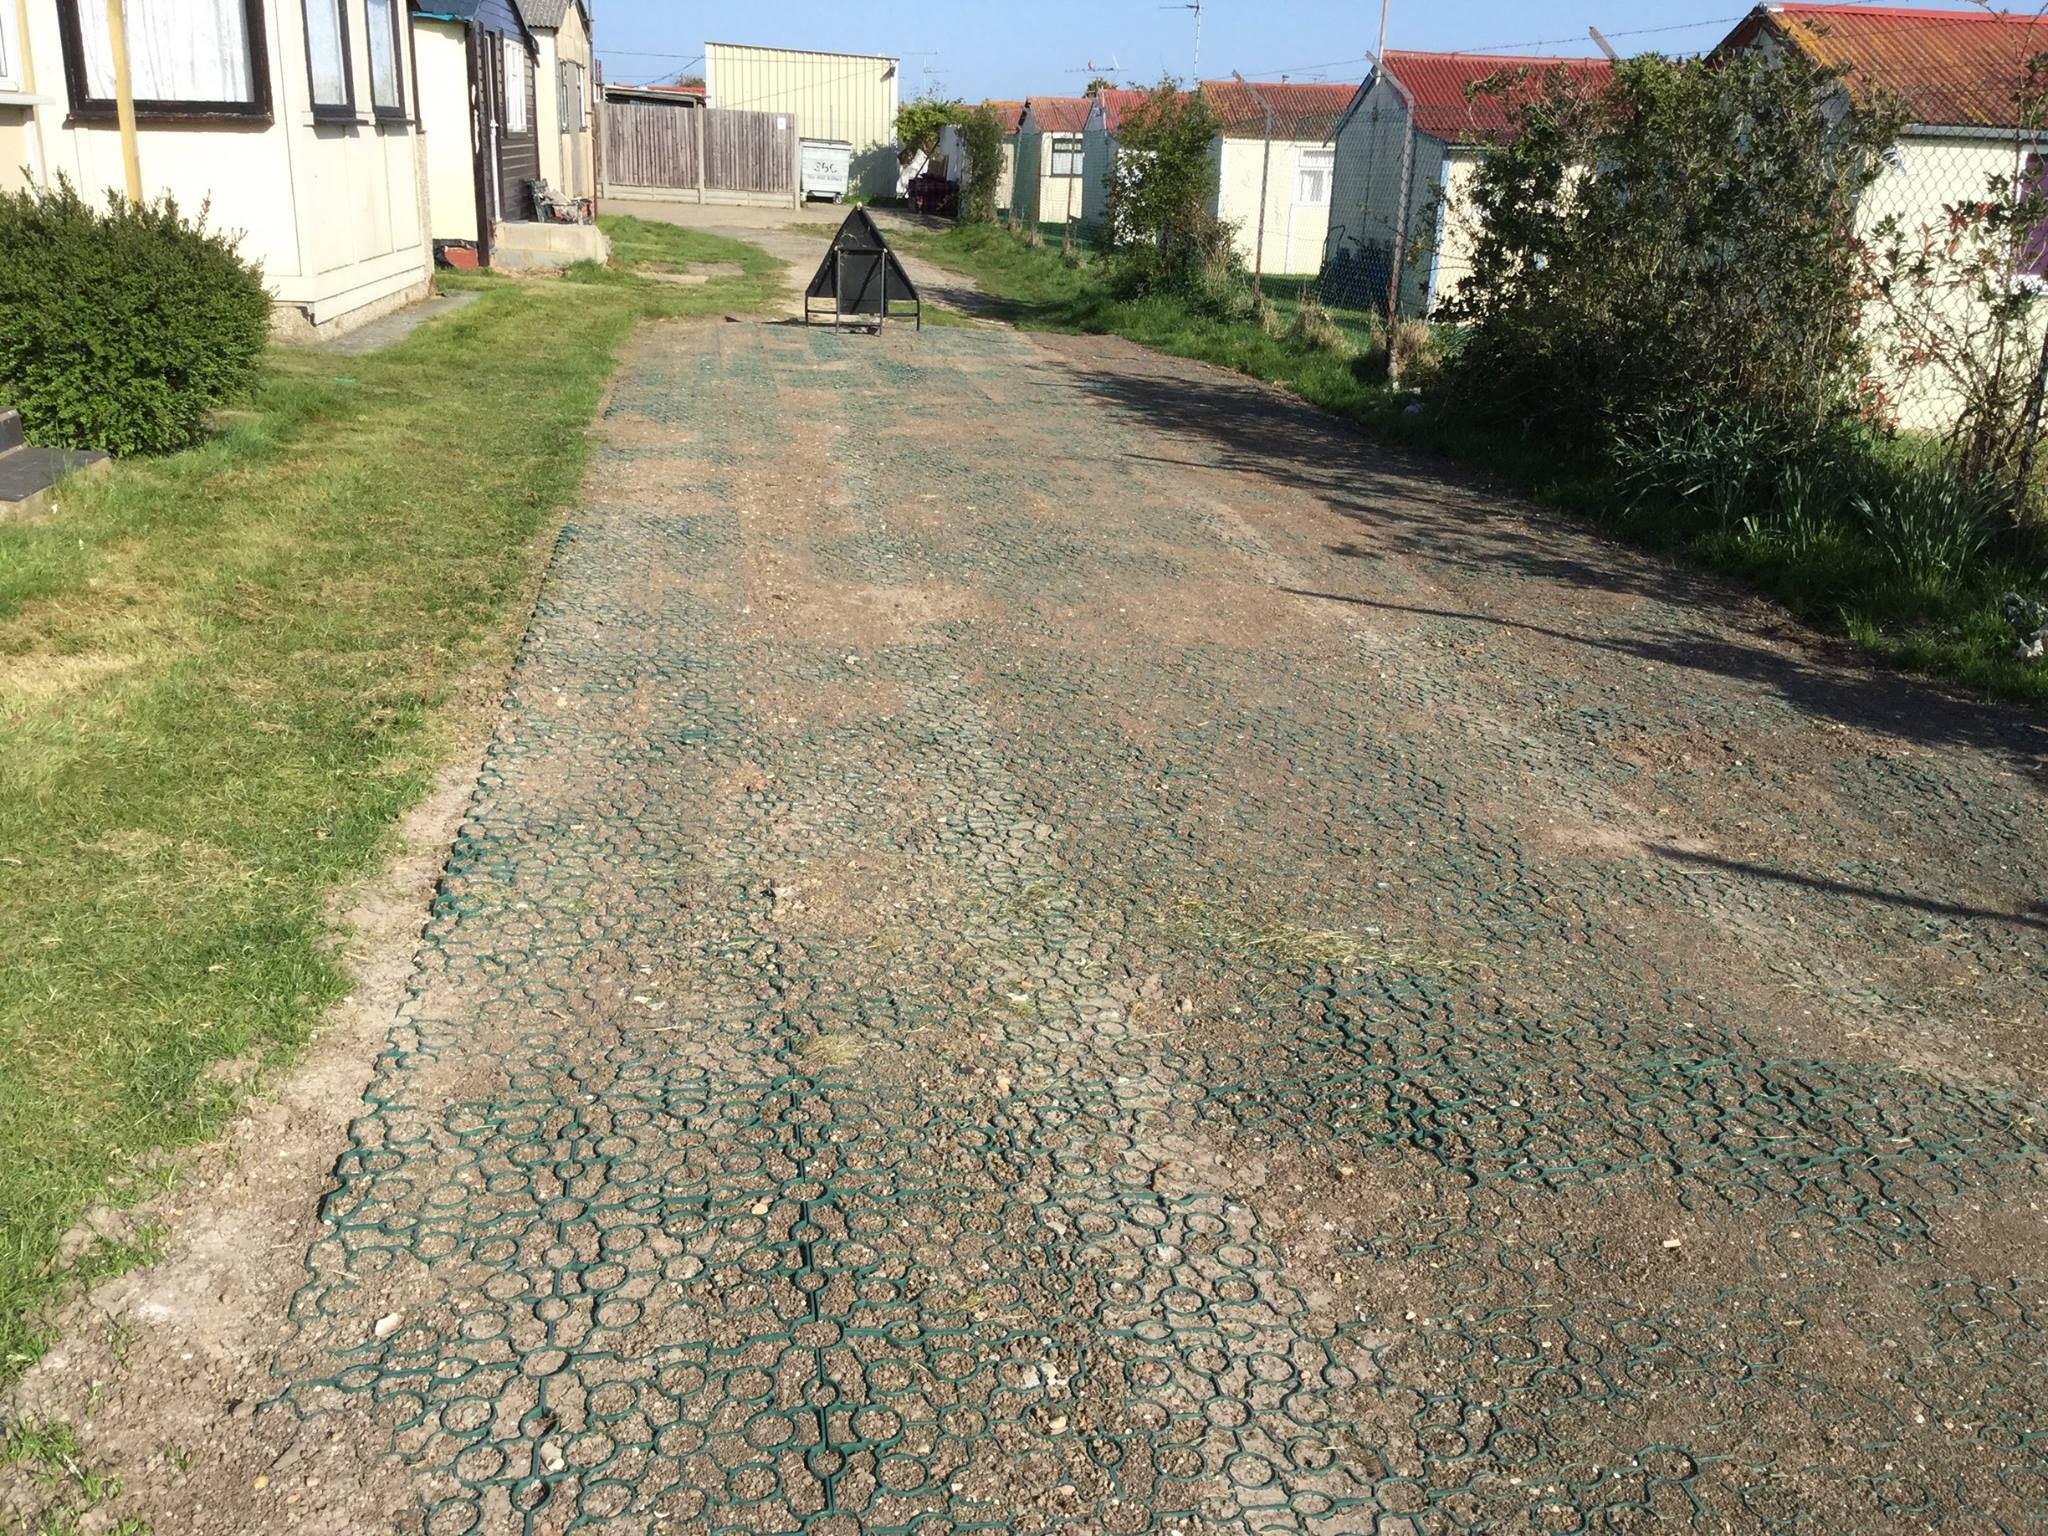 Grass Pavers - During